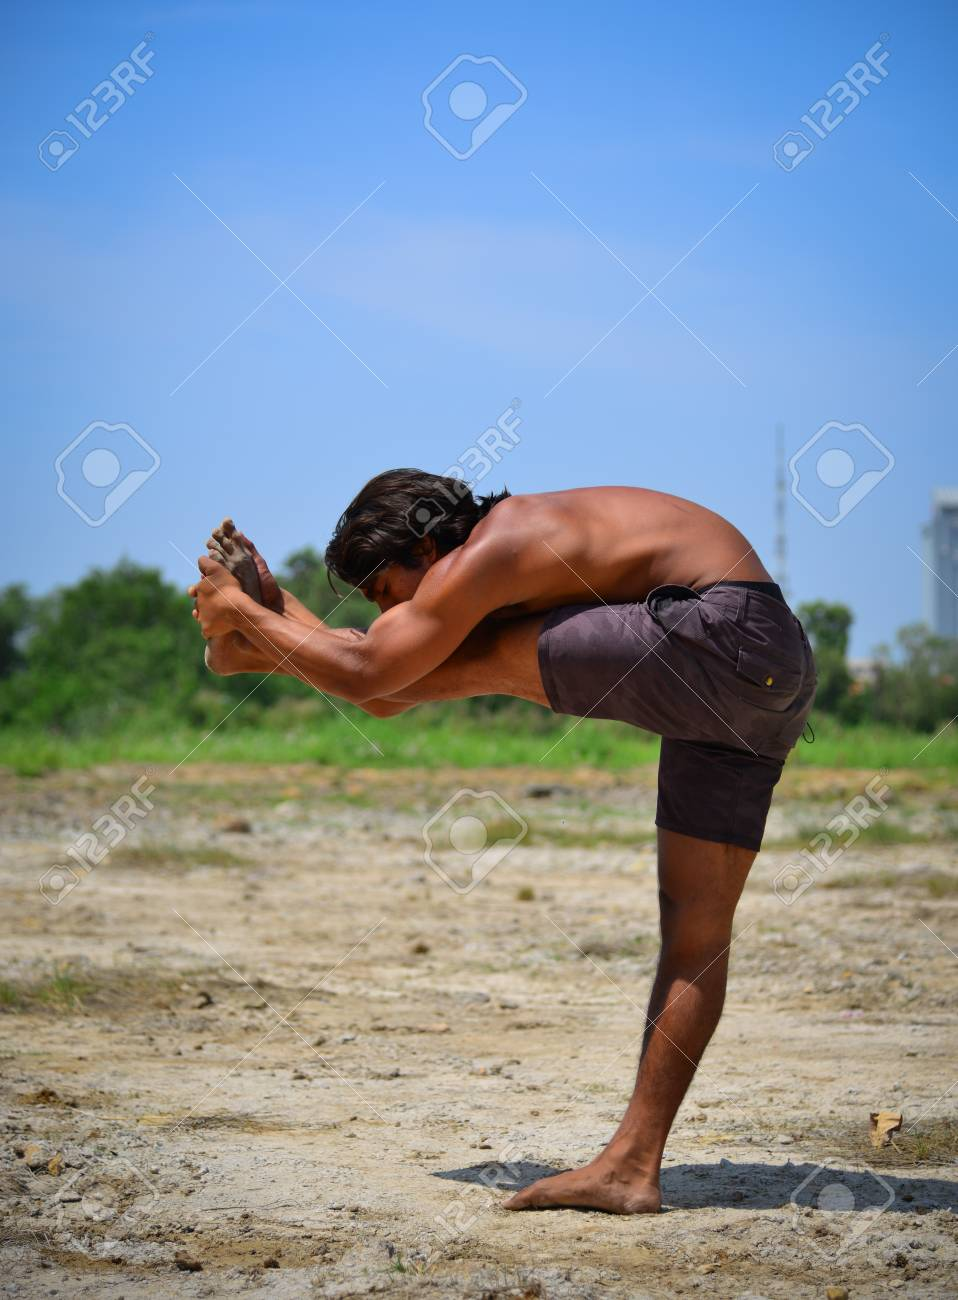 An Indian Muscle Man Doing Yoga Poses At Sunny Day With Cityscape Stock Photo Picture And Royalty Free Image Image 77090640